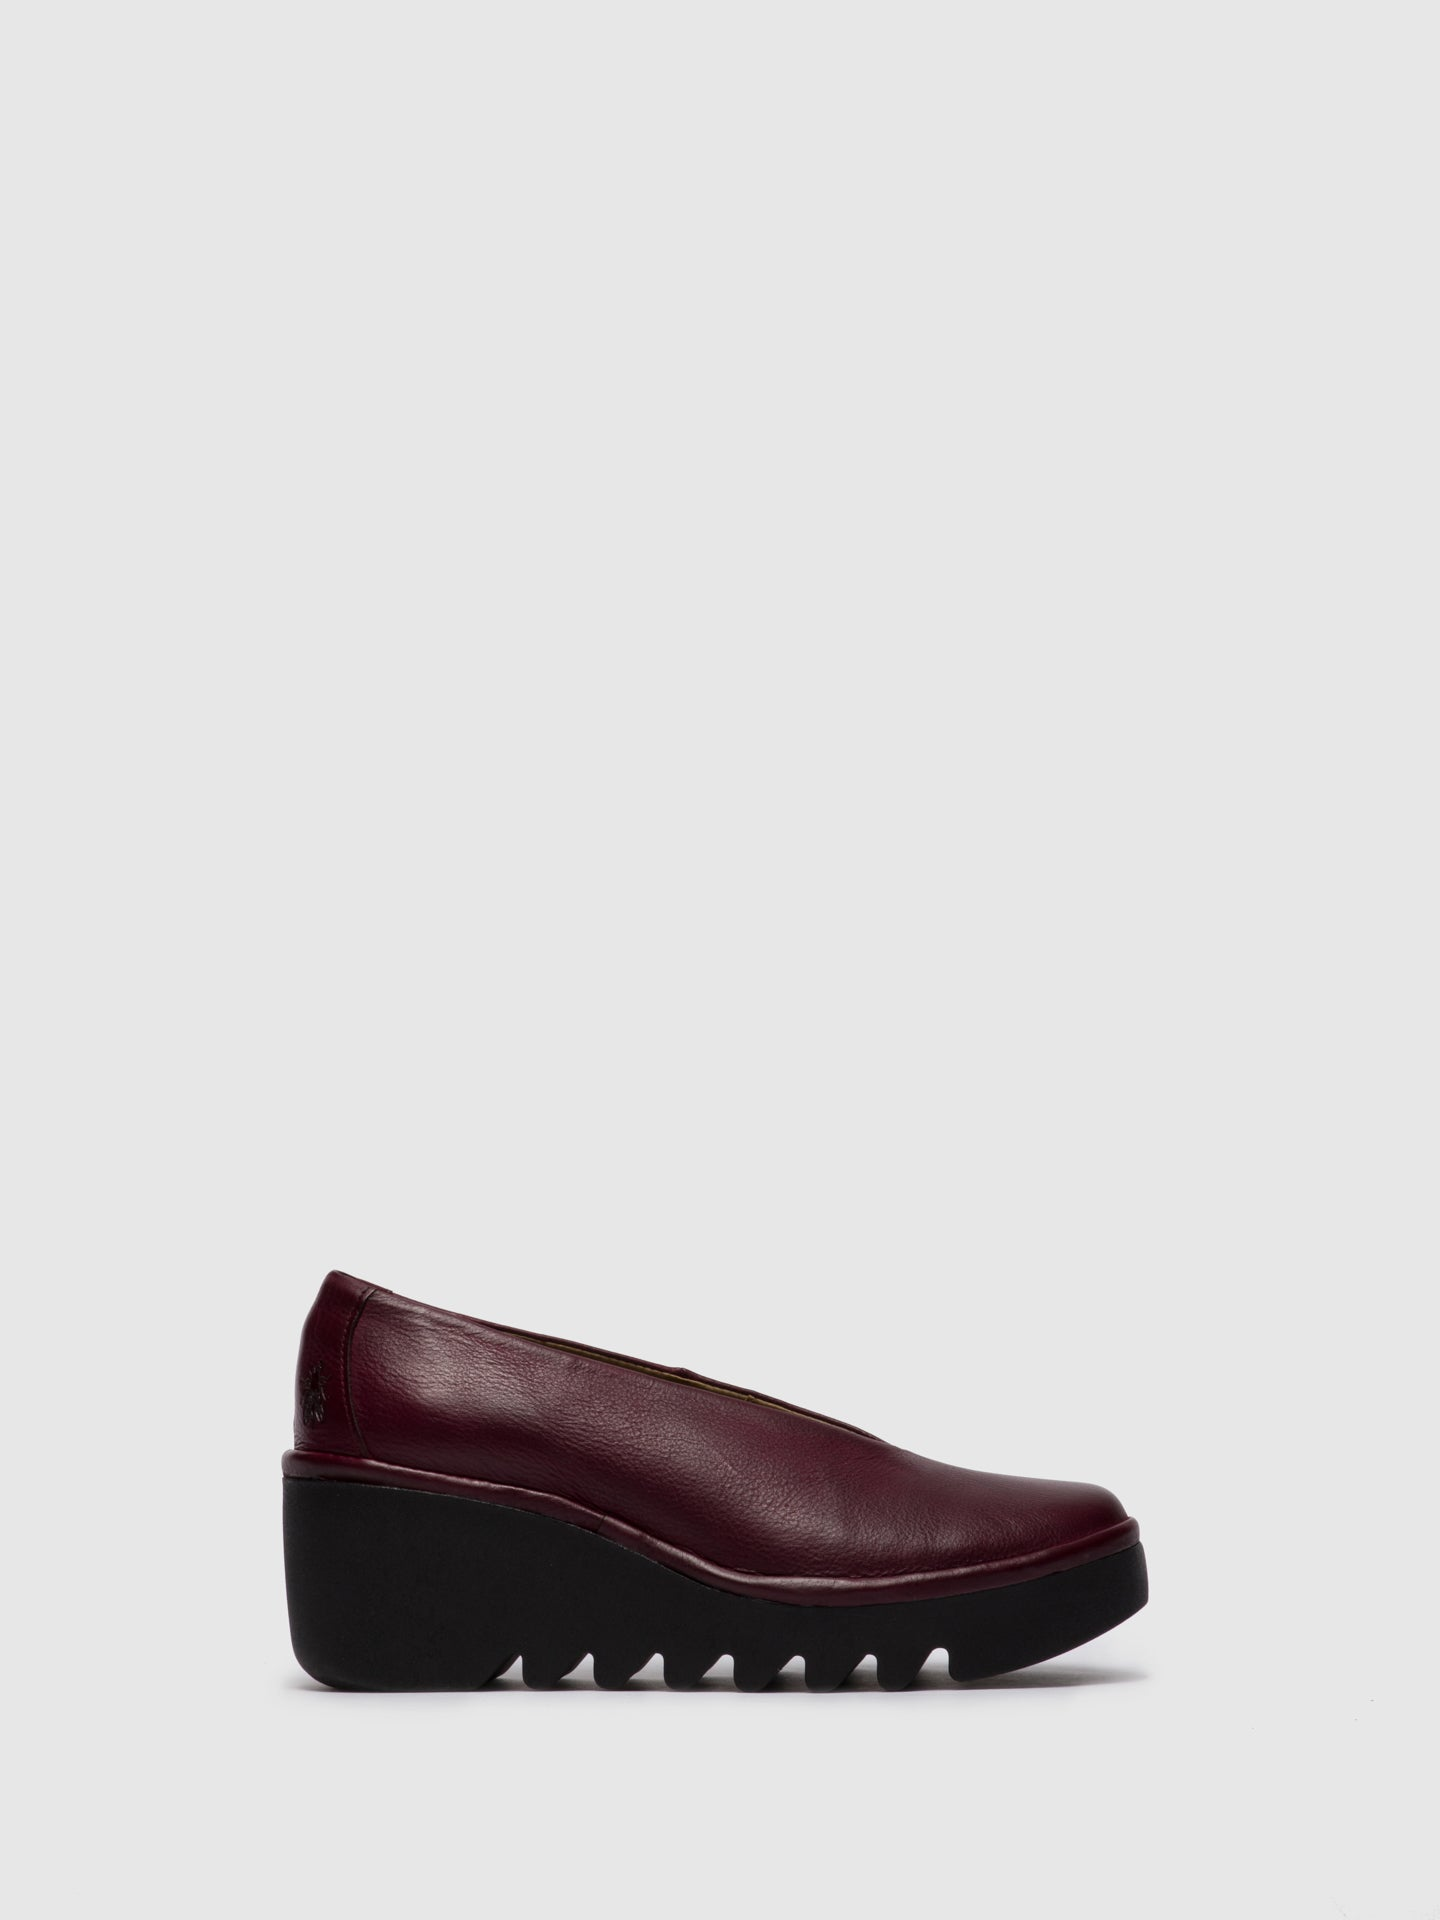 Fly London Slip-on Shoes BESO246FLY VERONA WINE